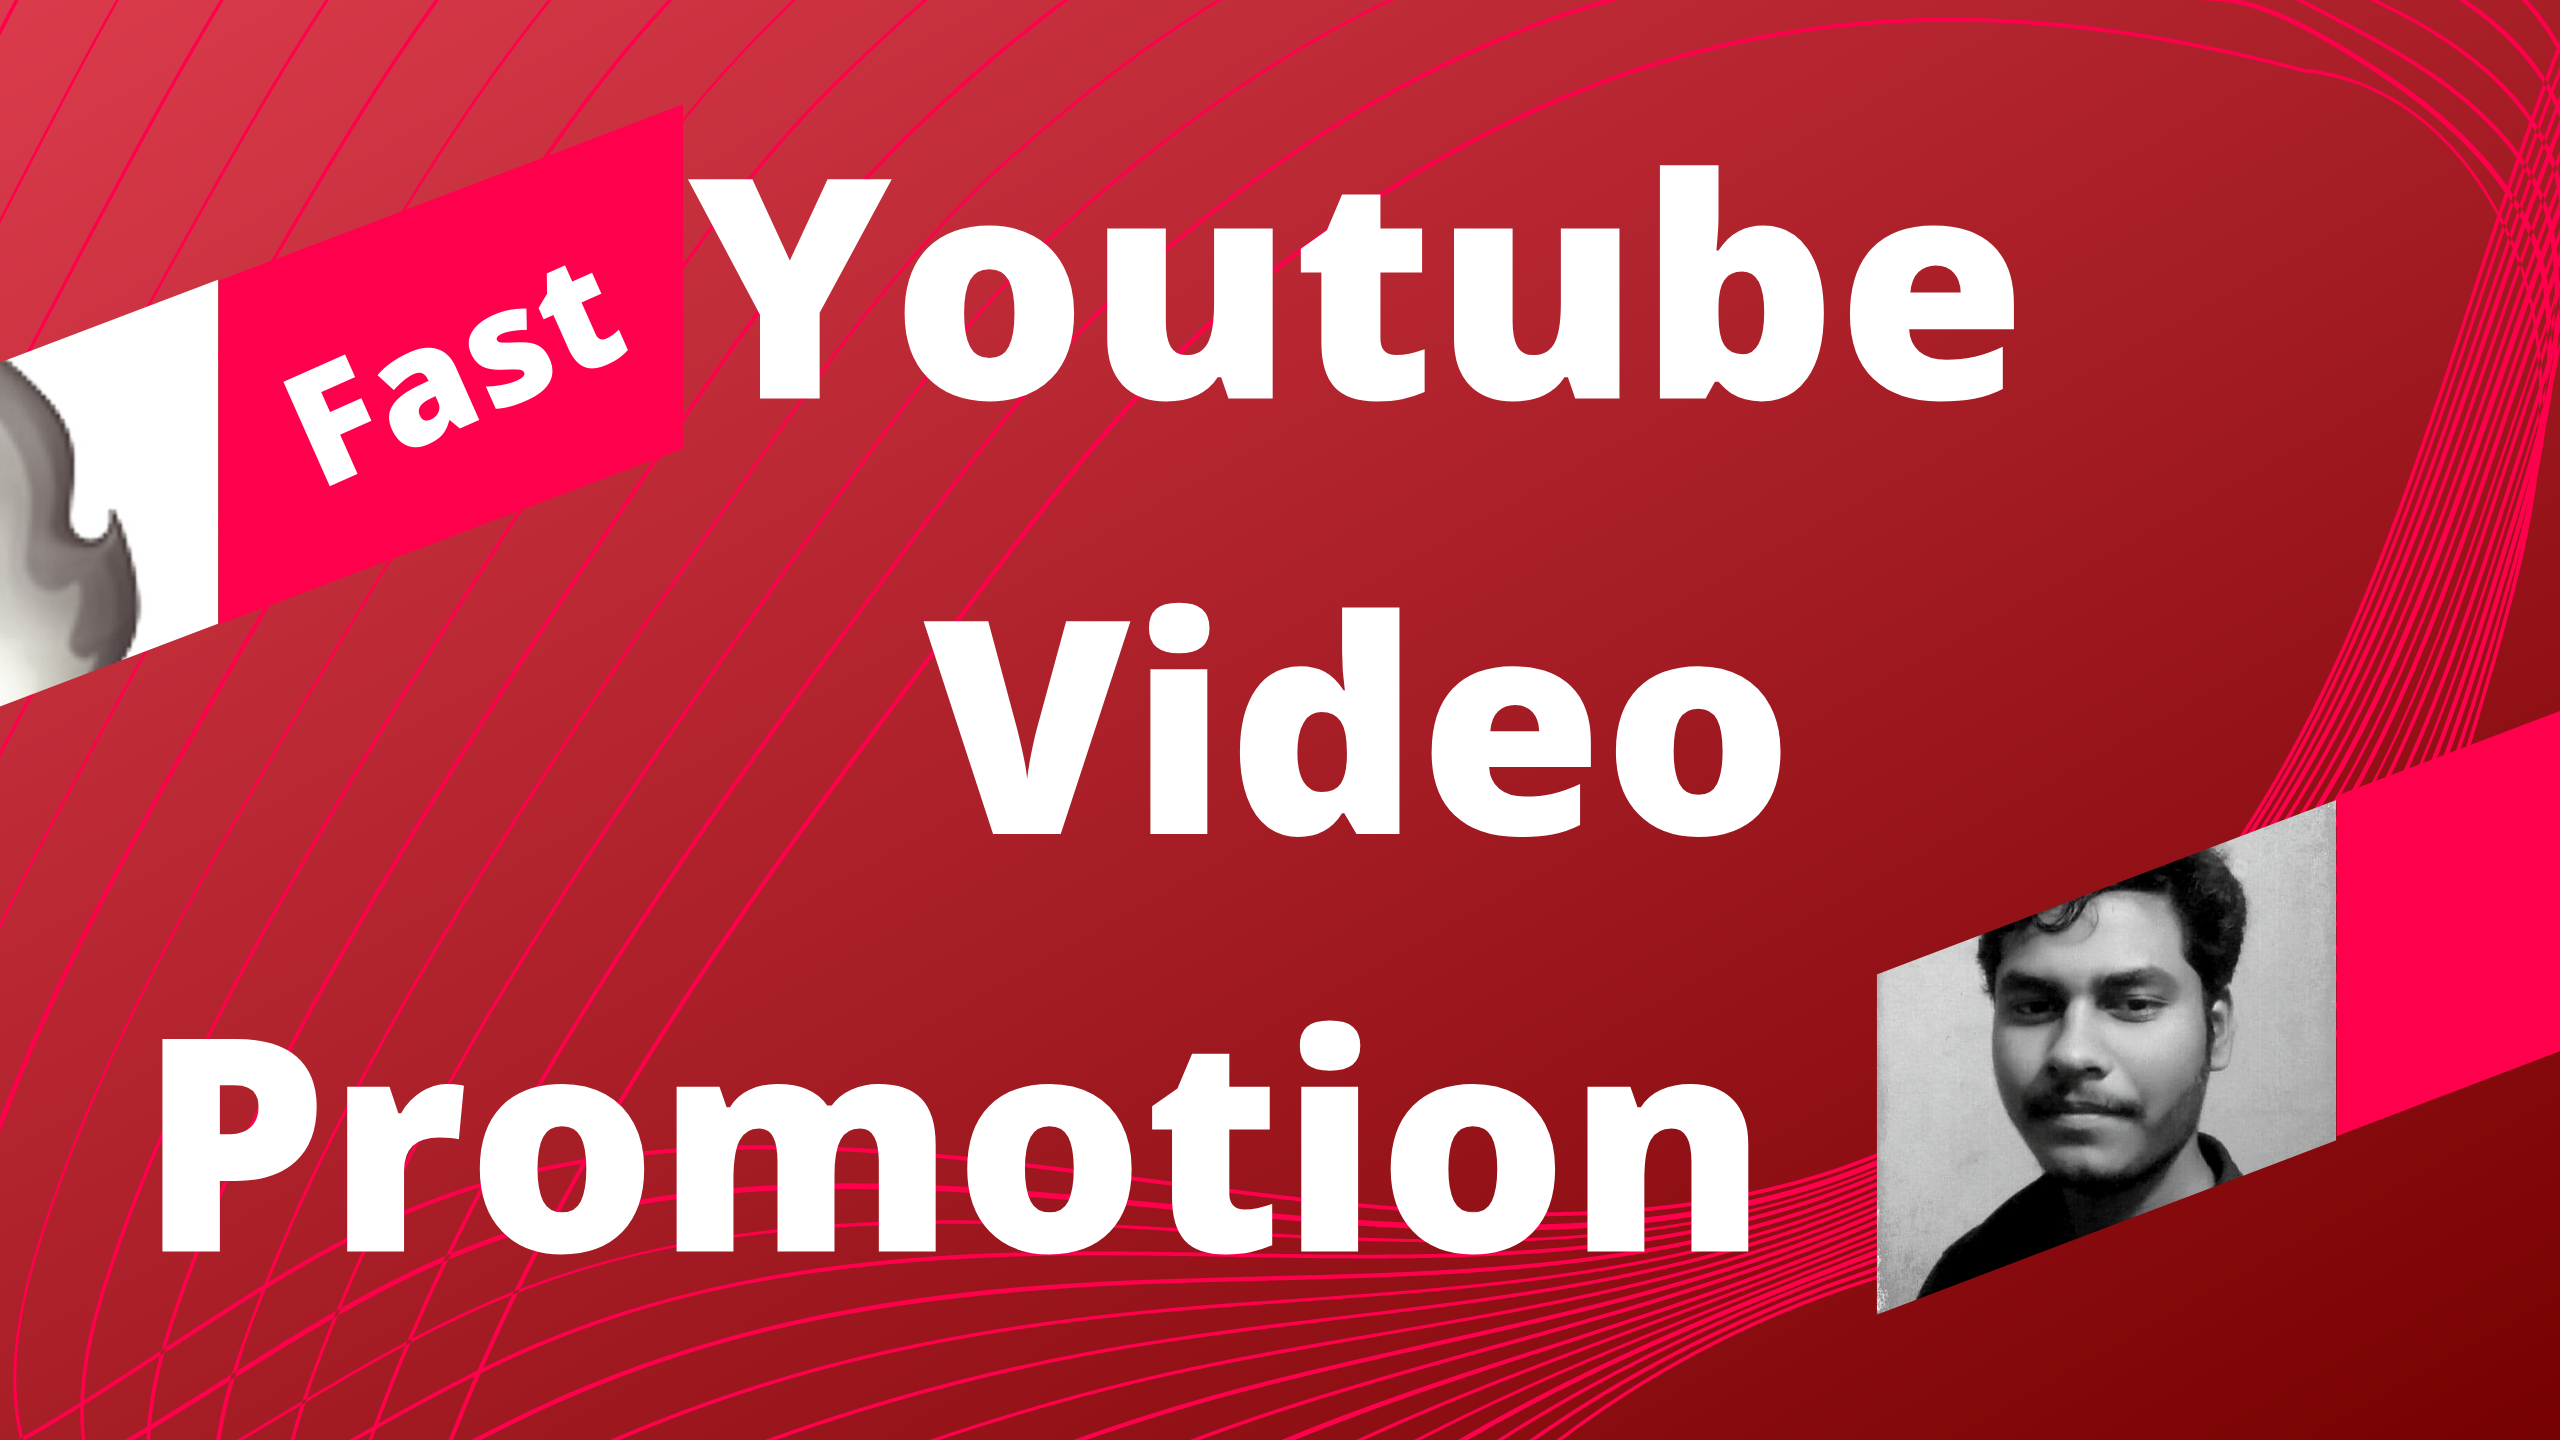 I will do promote youtube video promotion and marketing by Sumon11